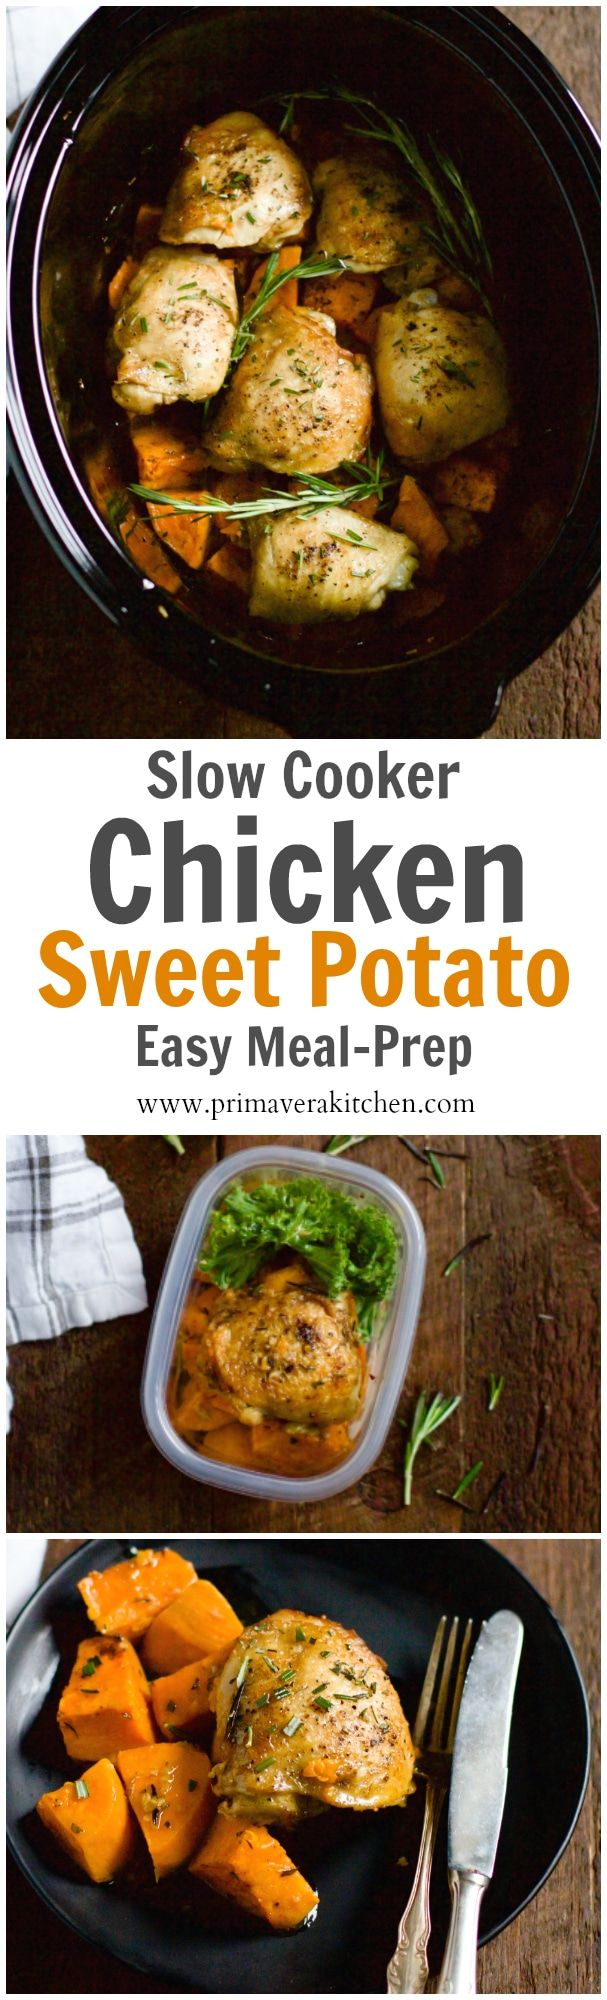 Slow Cooker Chicken and Sweet Potato - This Slow Cooker Chicken and Sweet Potato only requires 6-ingredient, 10 minutes to prep and it is a healthy and easy meal-prep recipe for during the week!